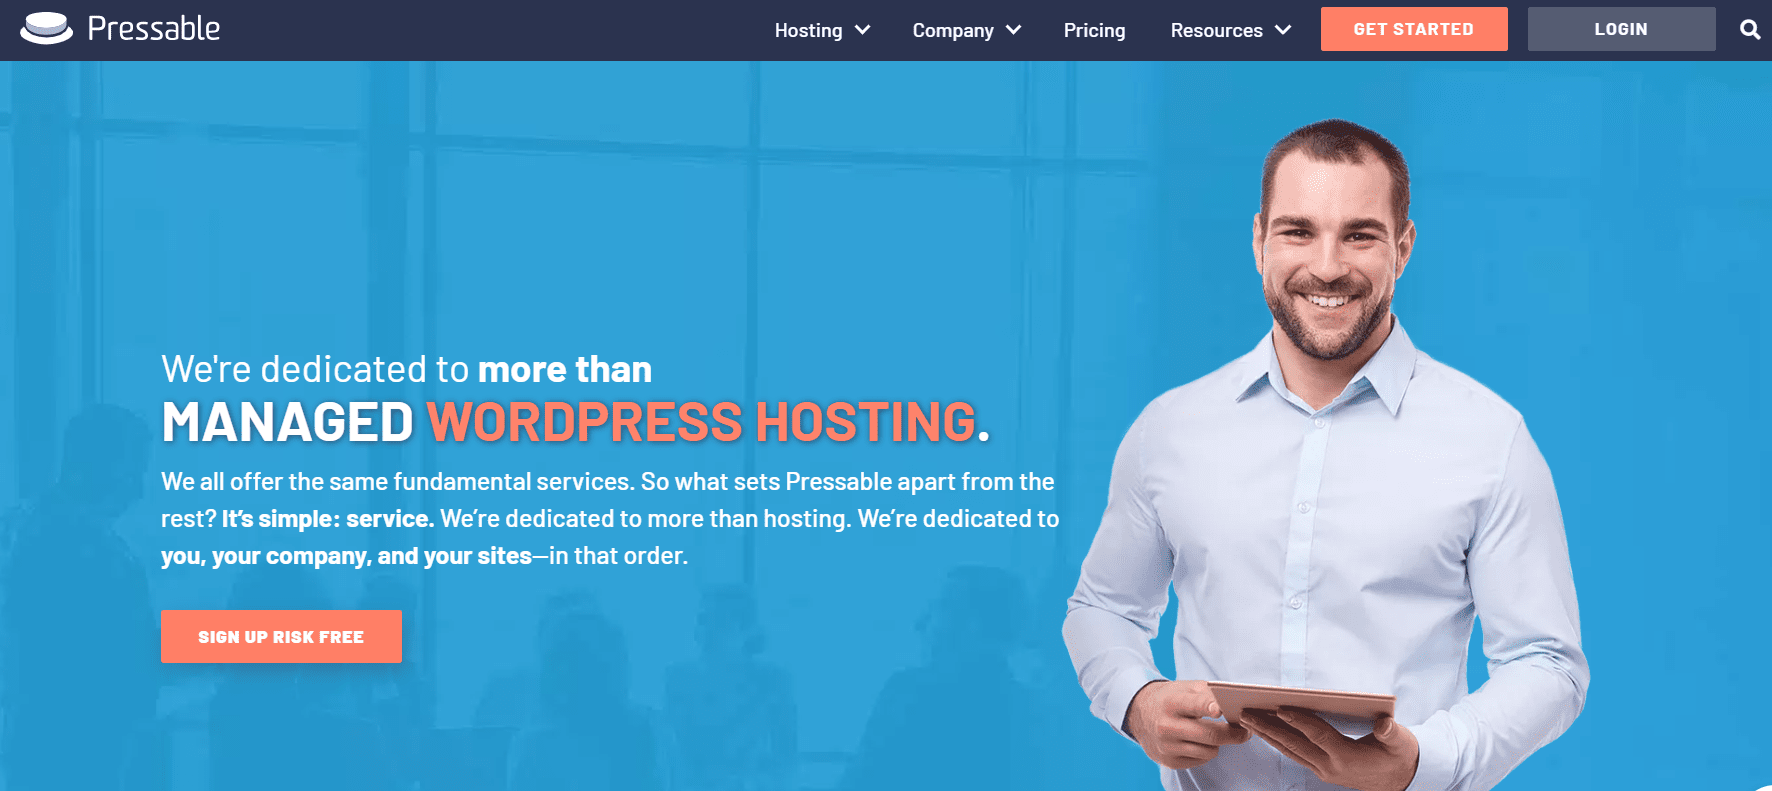 Managed WordPress Hosting from Pressable